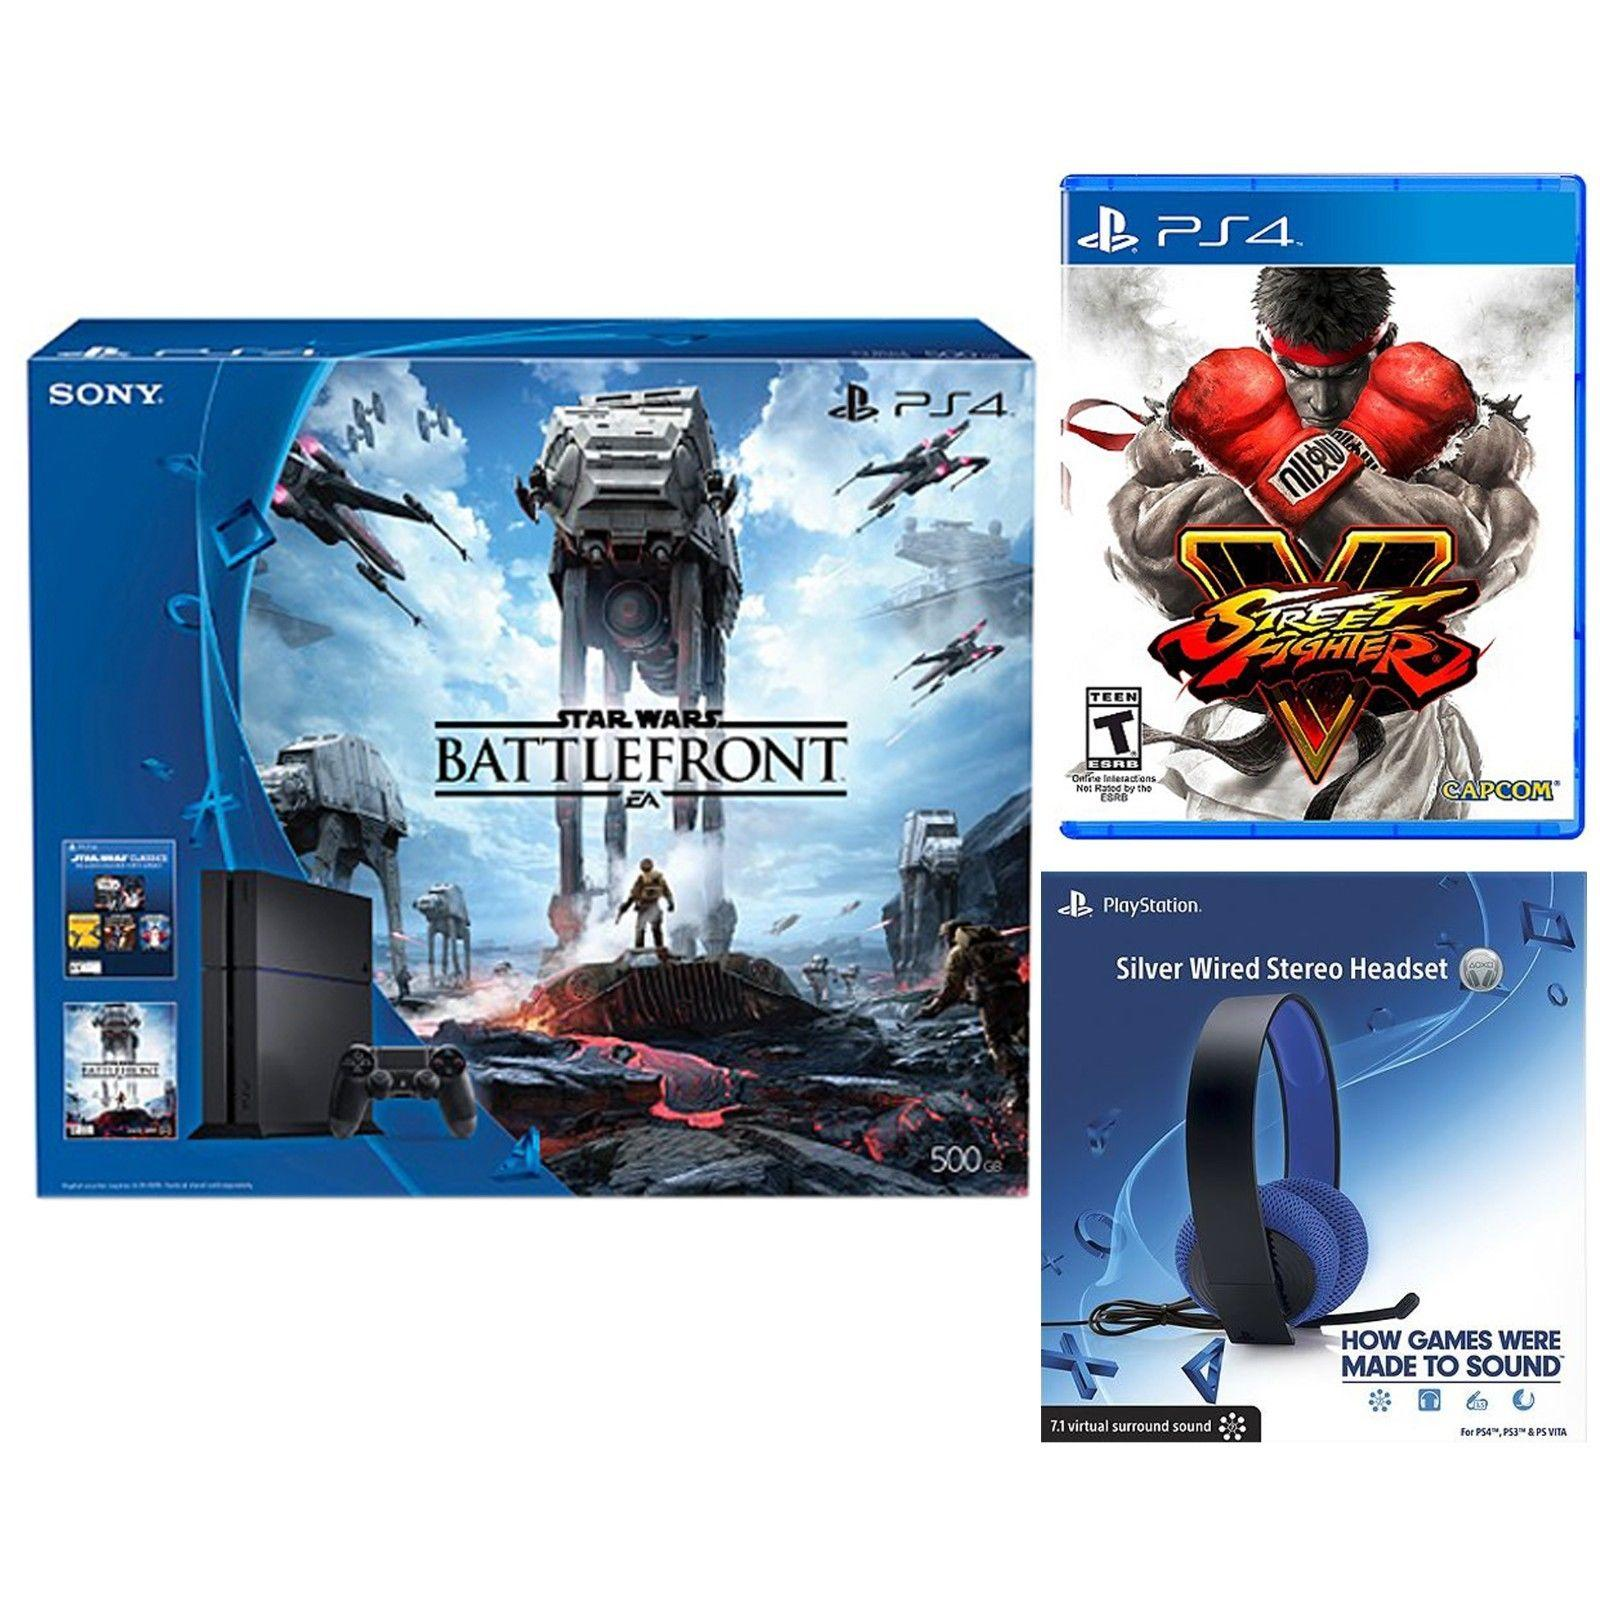 Sony PS4 500GB Star Wars Console + Street Fighter 4 + Sony Silver Wired Headset